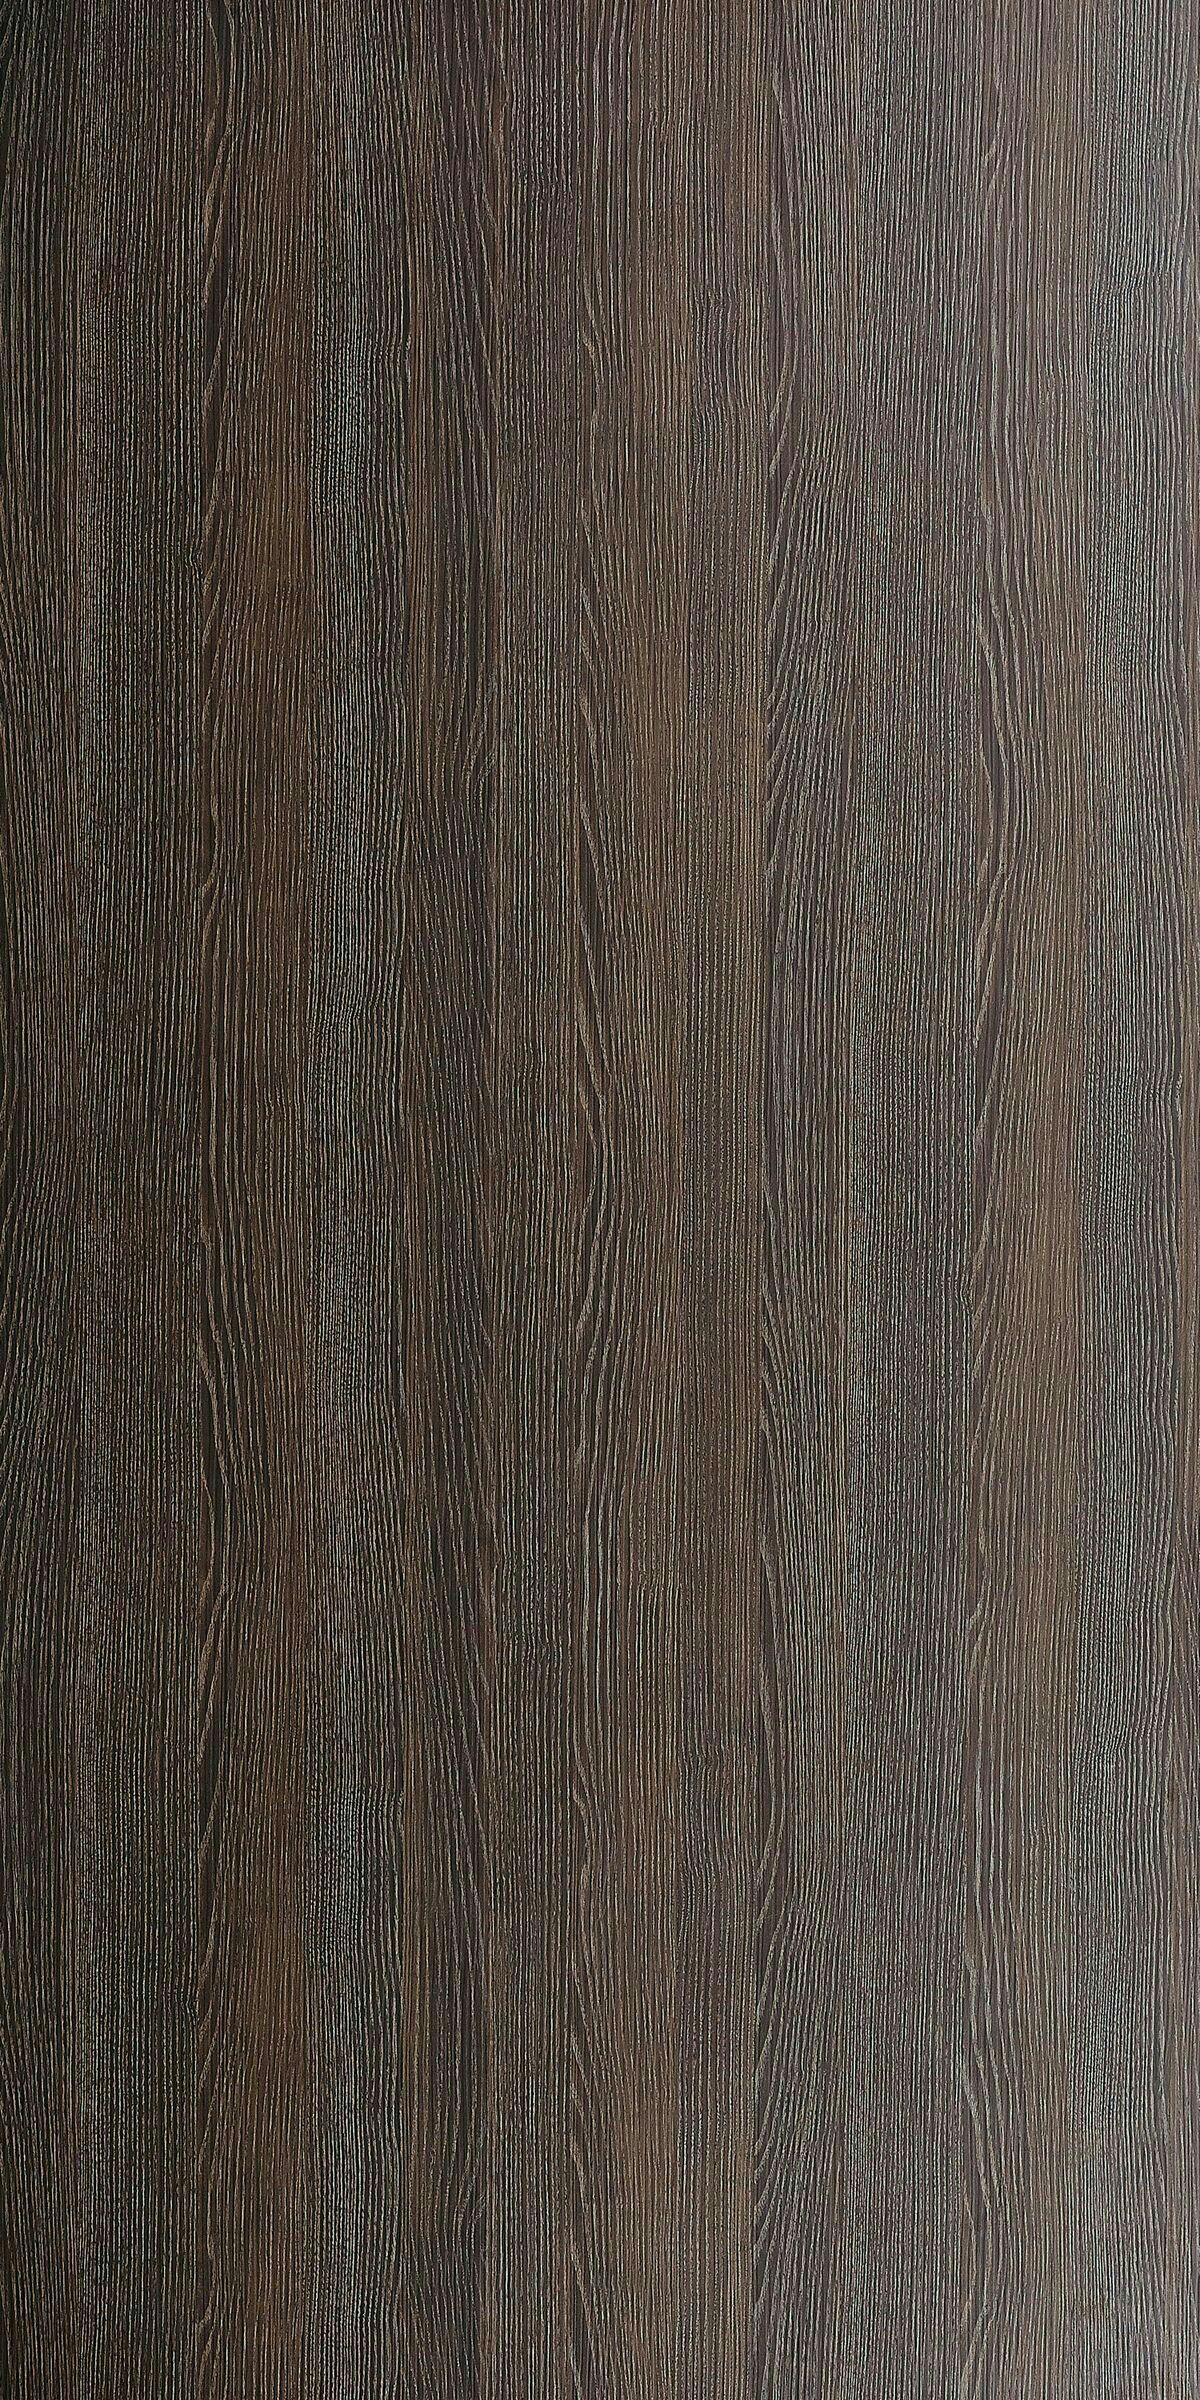 Pin by emilia on walls floors pinterest walls material board textured walls veneer texture dark wood texture tiling wood floor motifs madeira wraparound dailygadgetfo Image collections